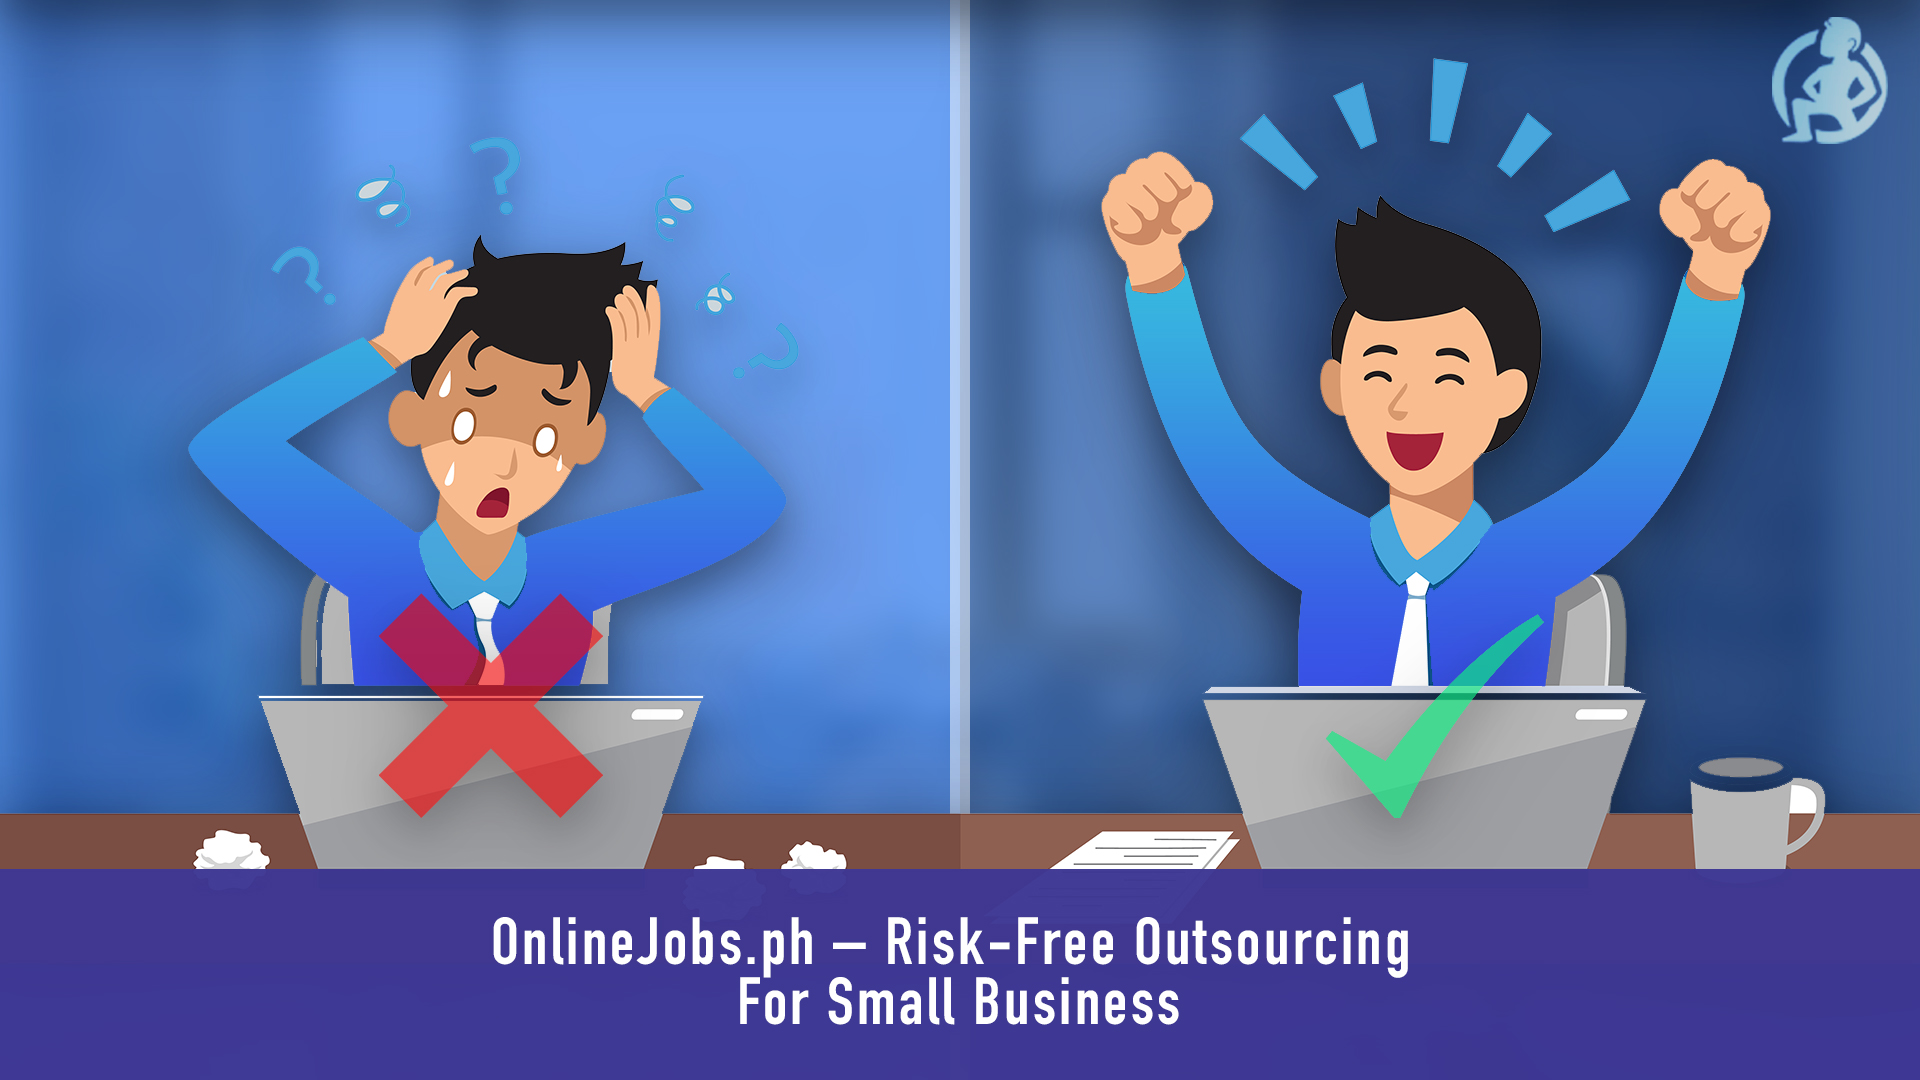 Risk-Free Outsourcing For Small Business